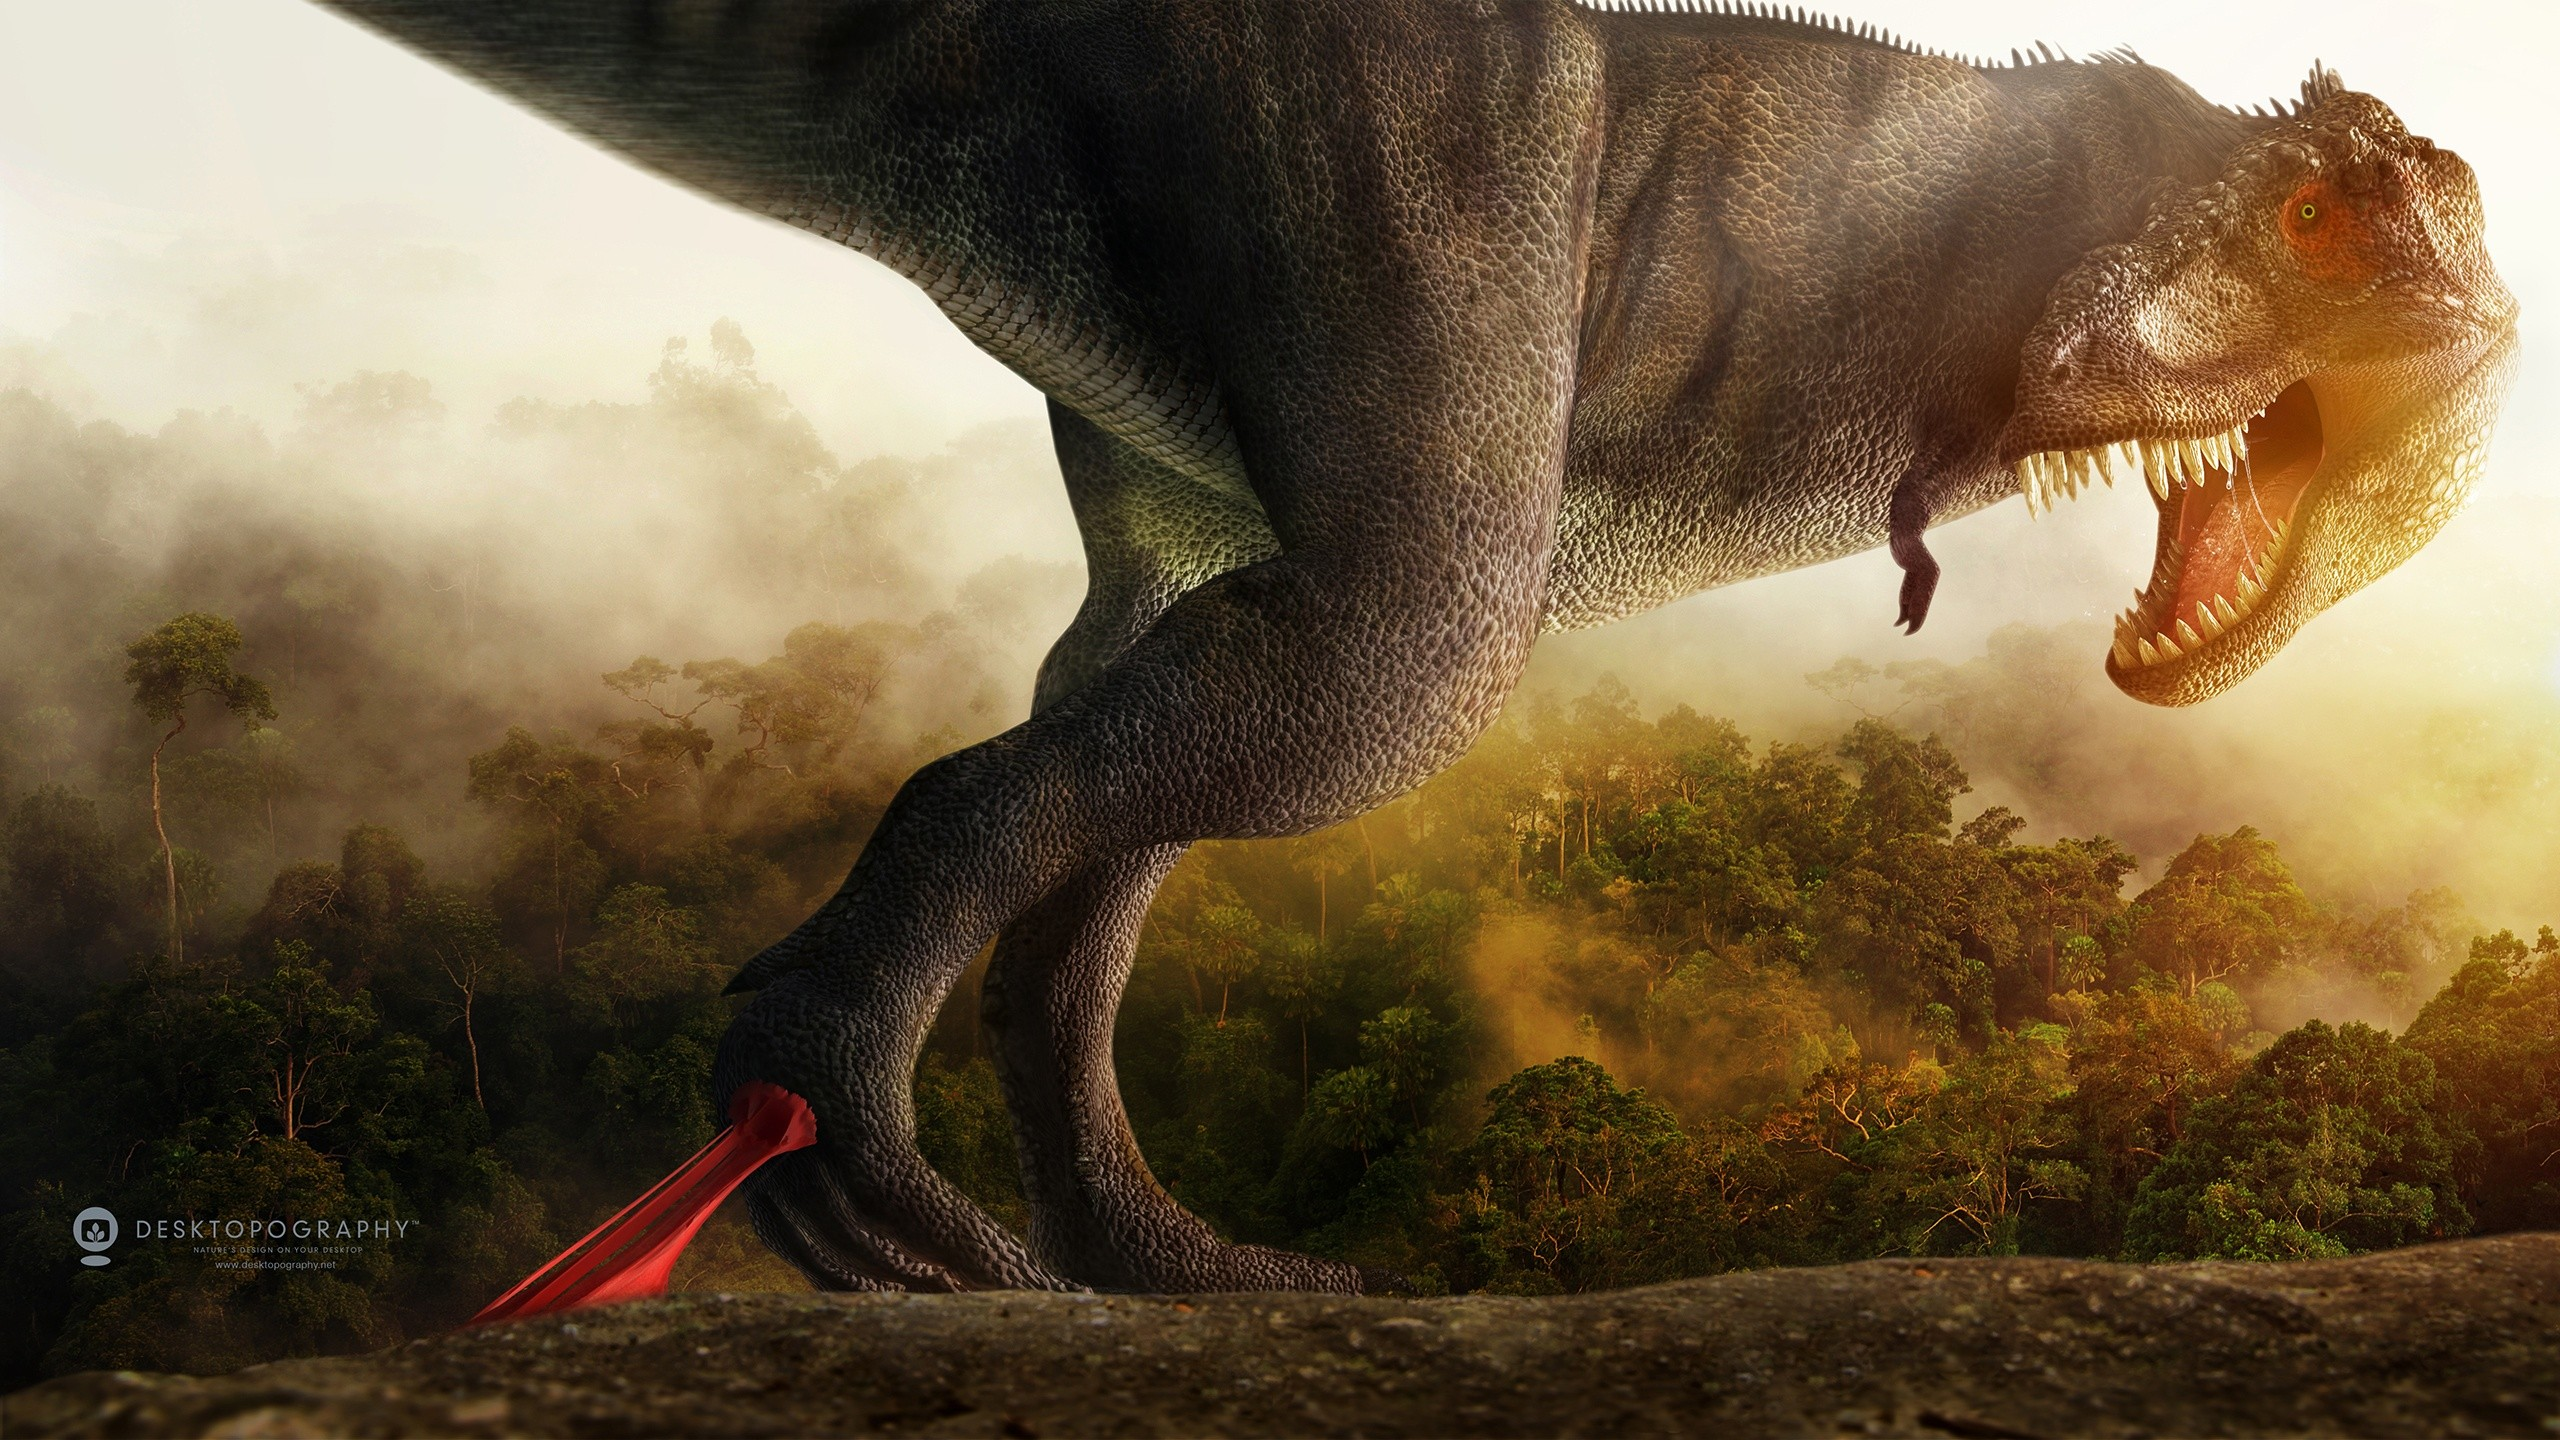 Iphone 5 Space Wallpaper Hd Dino Squelch Wallpapers Hd Wallpapers Id 13999